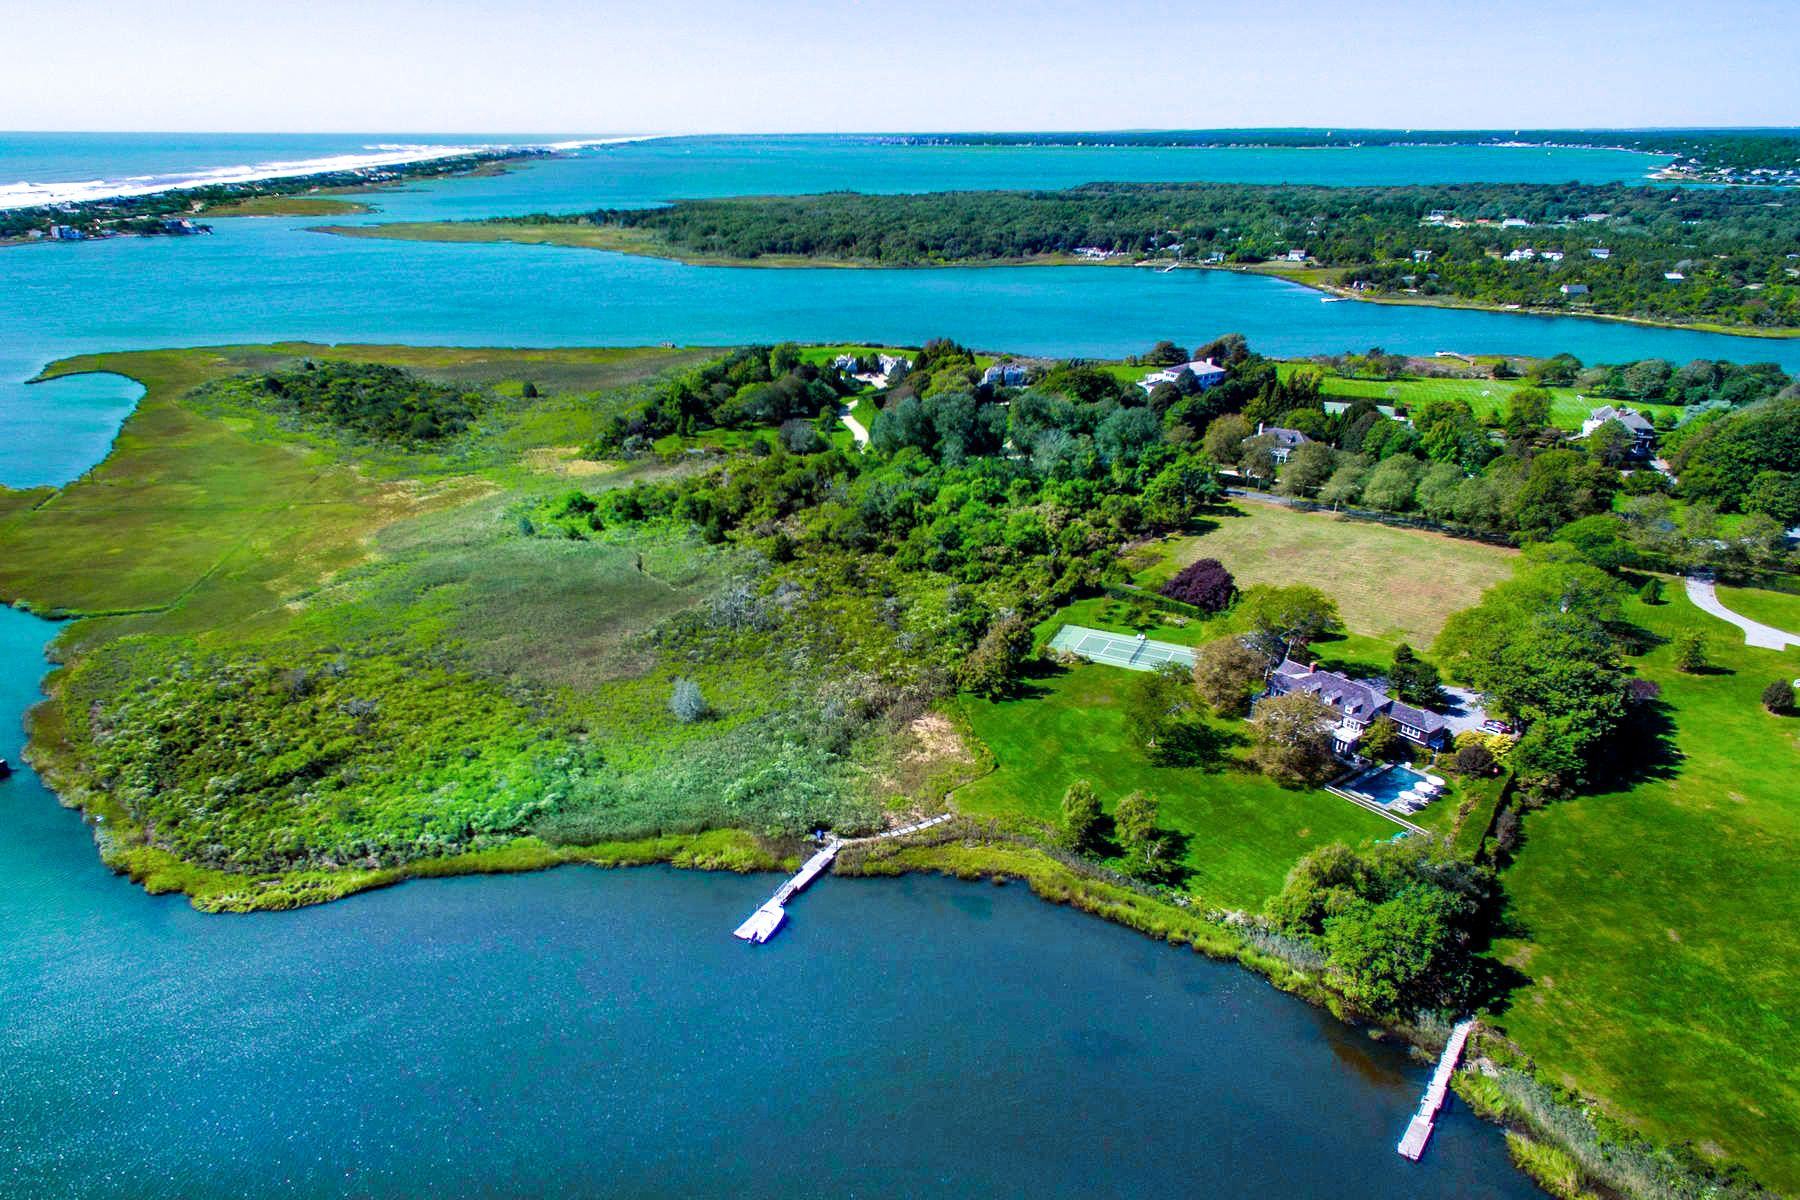 Single Family Homes for Sale at Captains Neck Waterfront Estate W/ Dock 520 Captains Neck Lane Southampton, New York 11968 United States